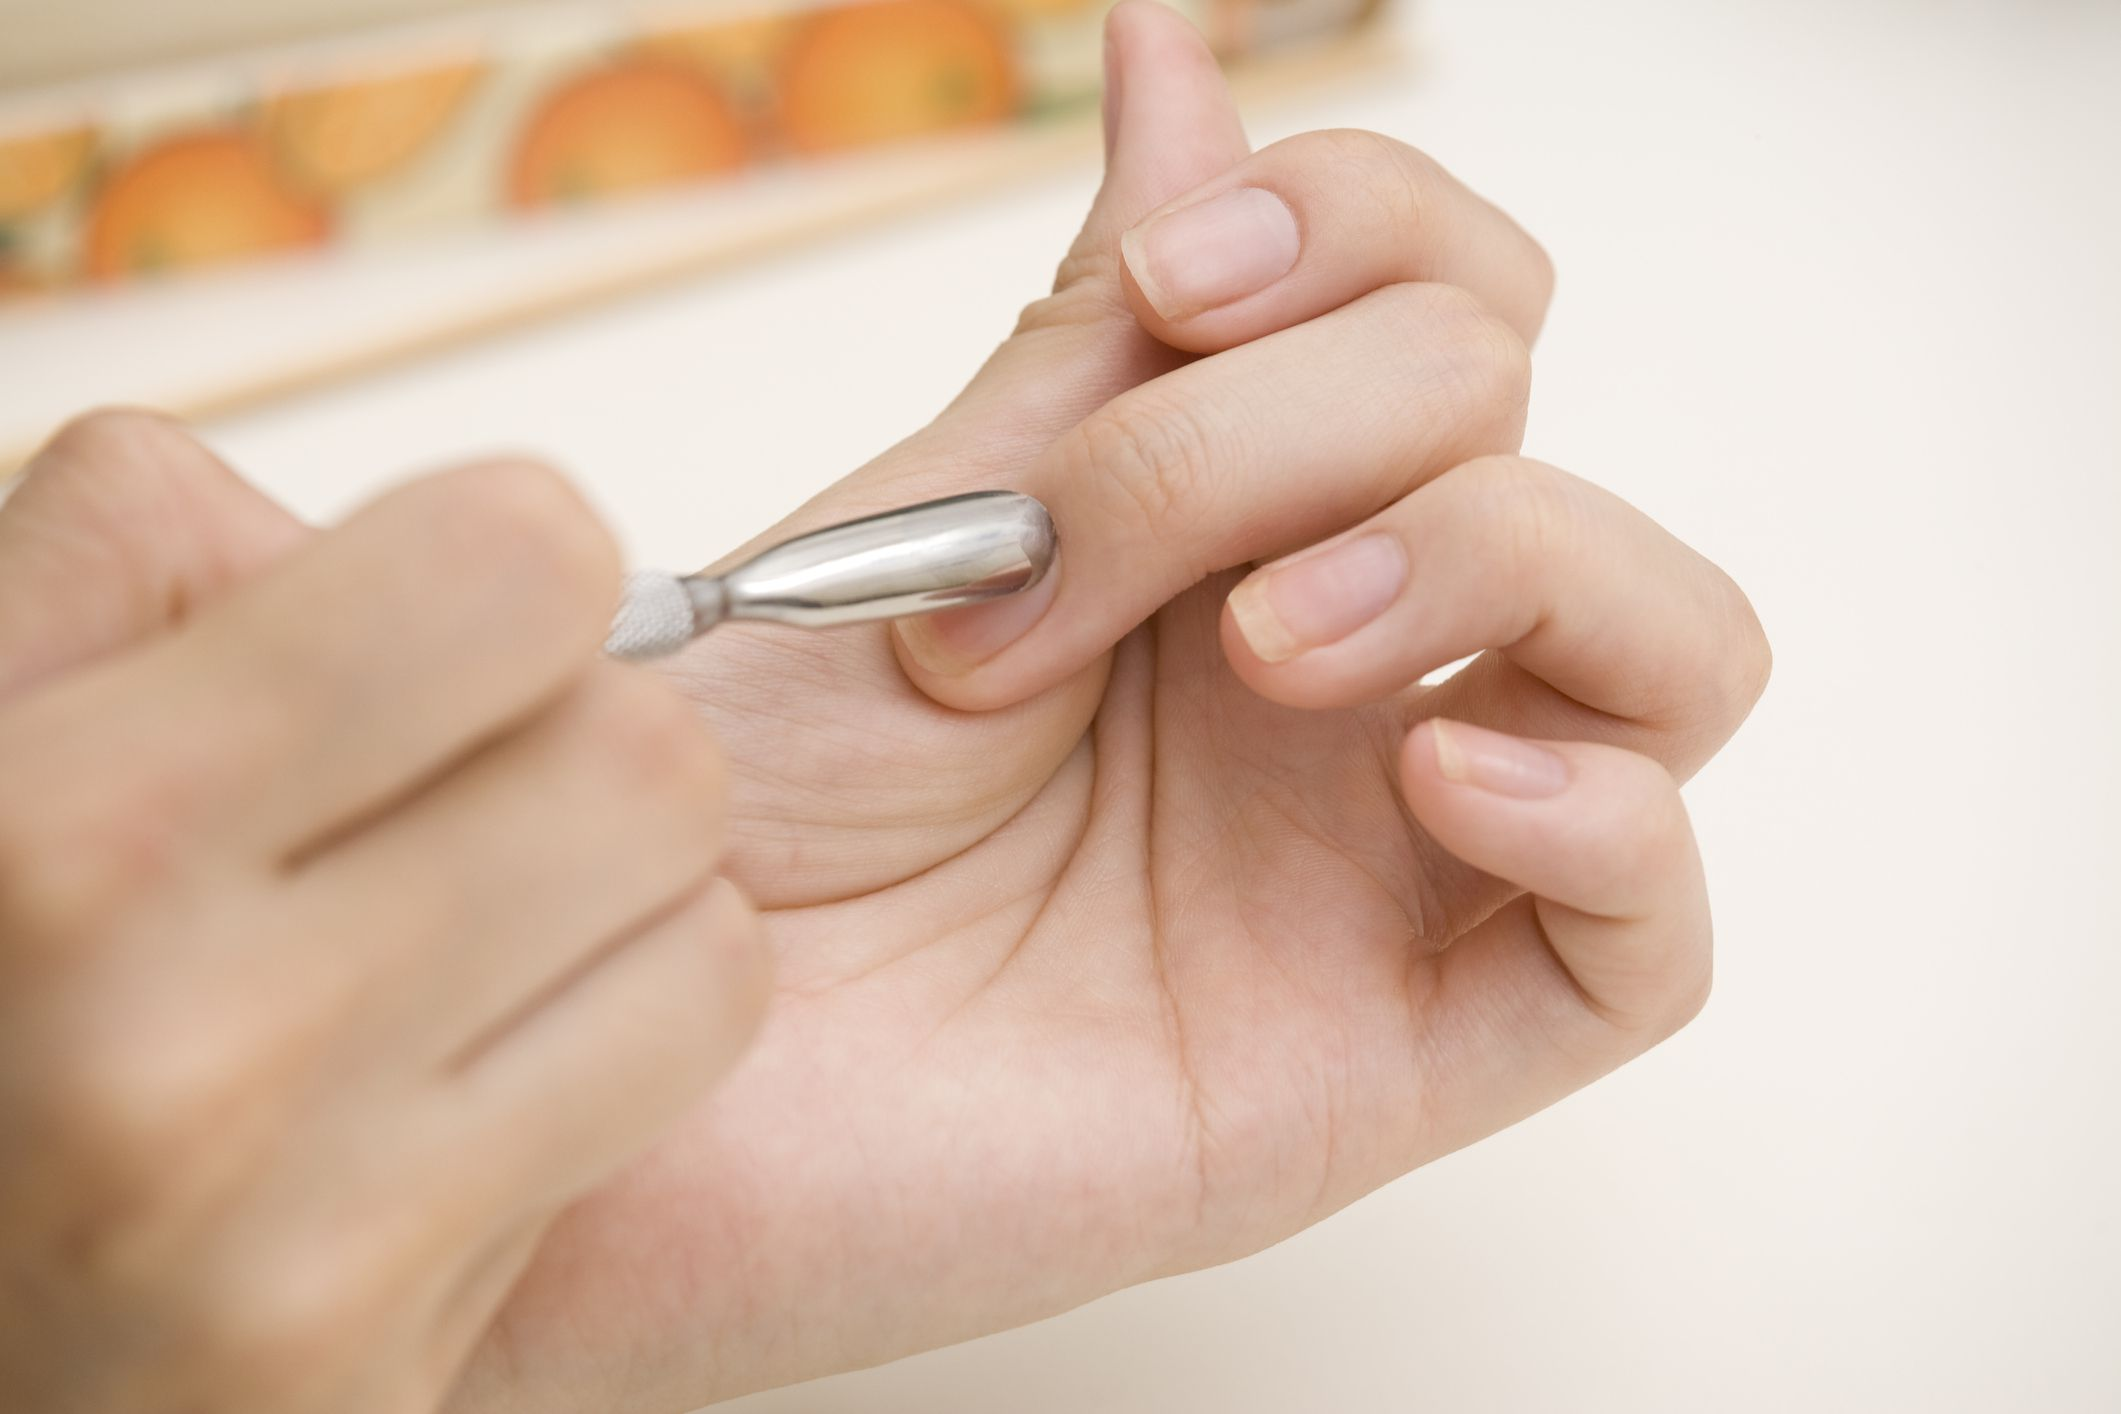 What\'s Causing My Cracked Cuticles and Skin?